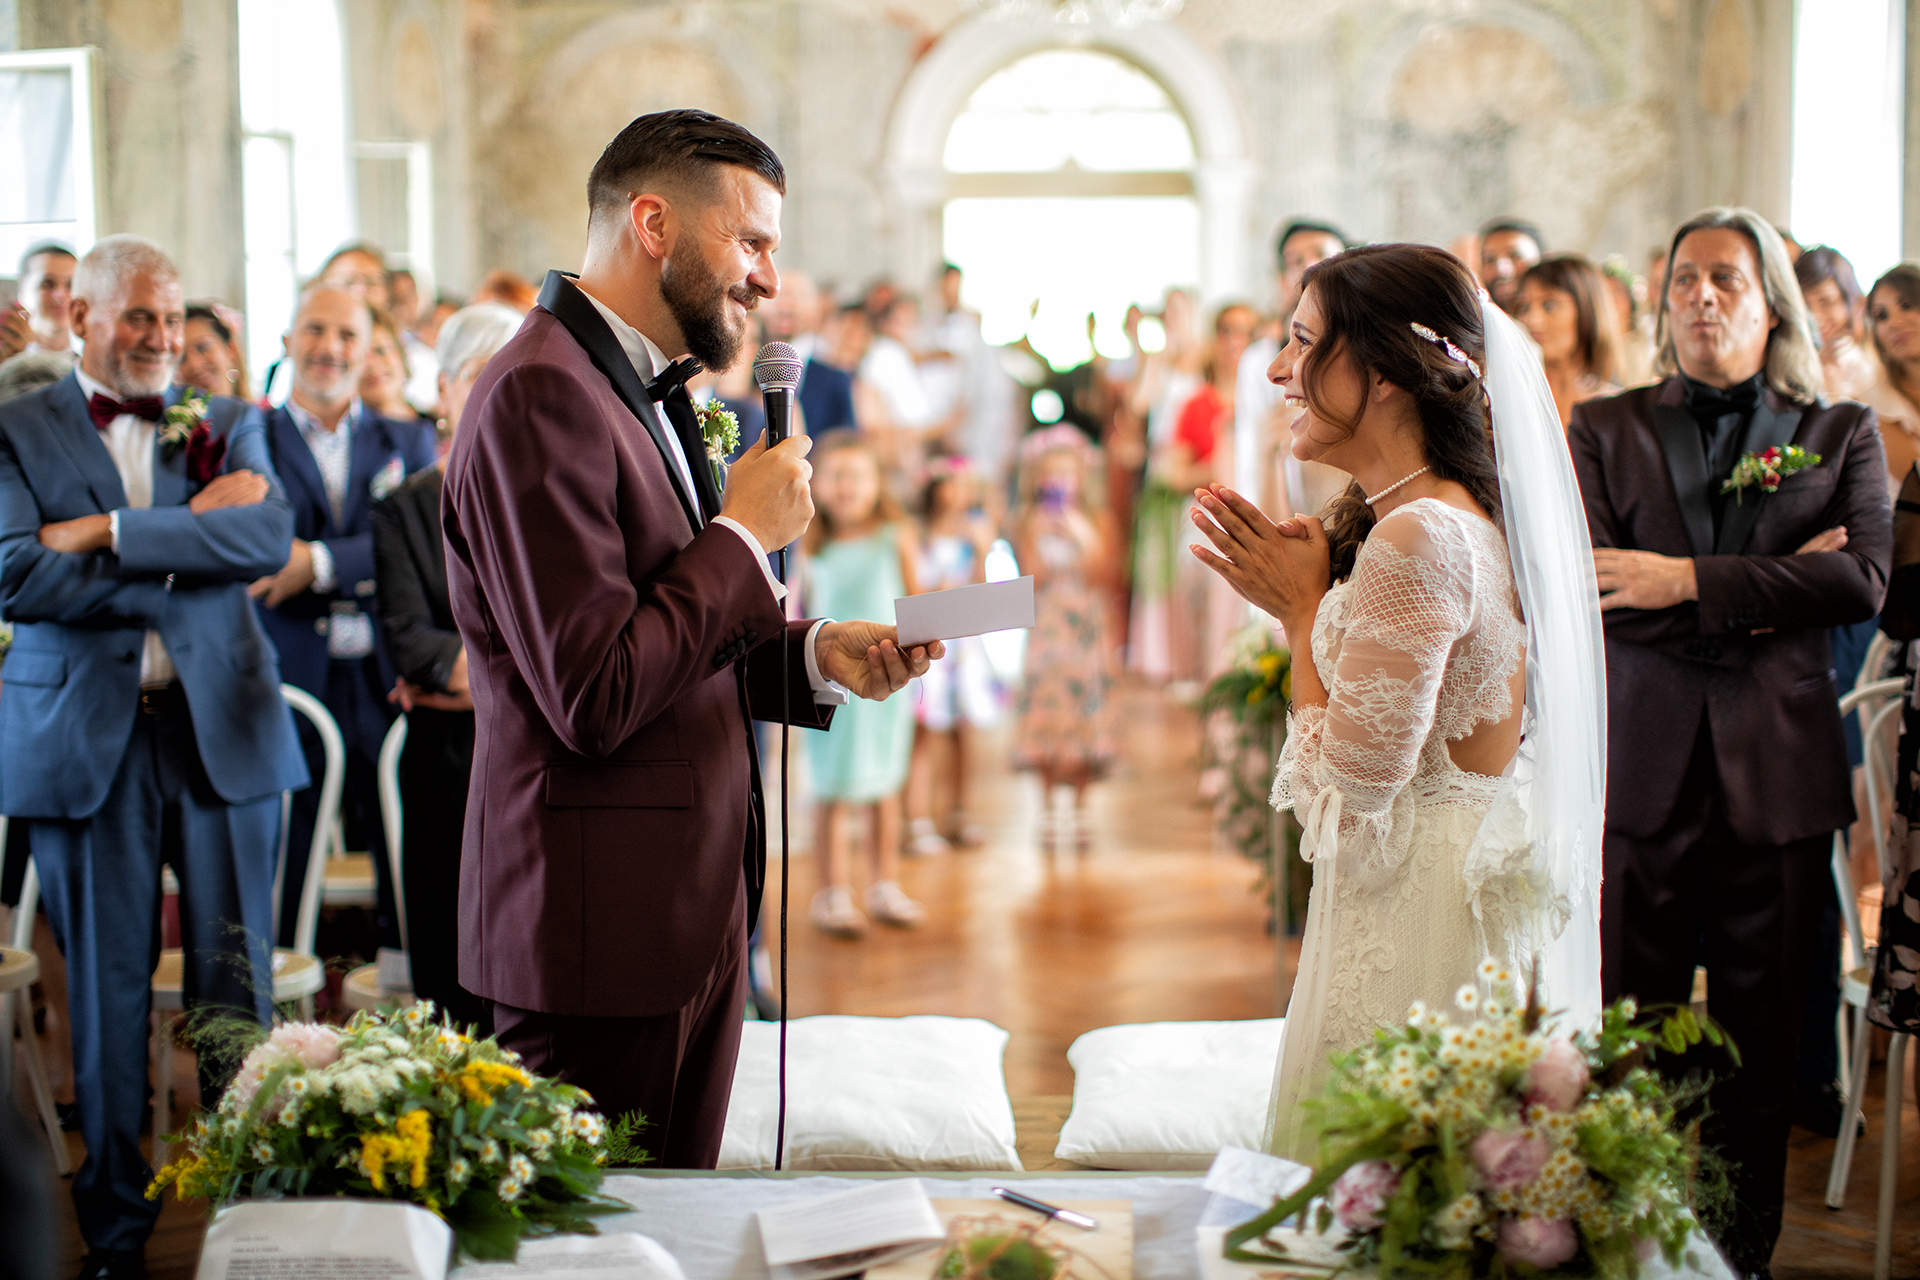 Daniele Borghello, of Padova, is a wedding photographer for Sagrado - Italy